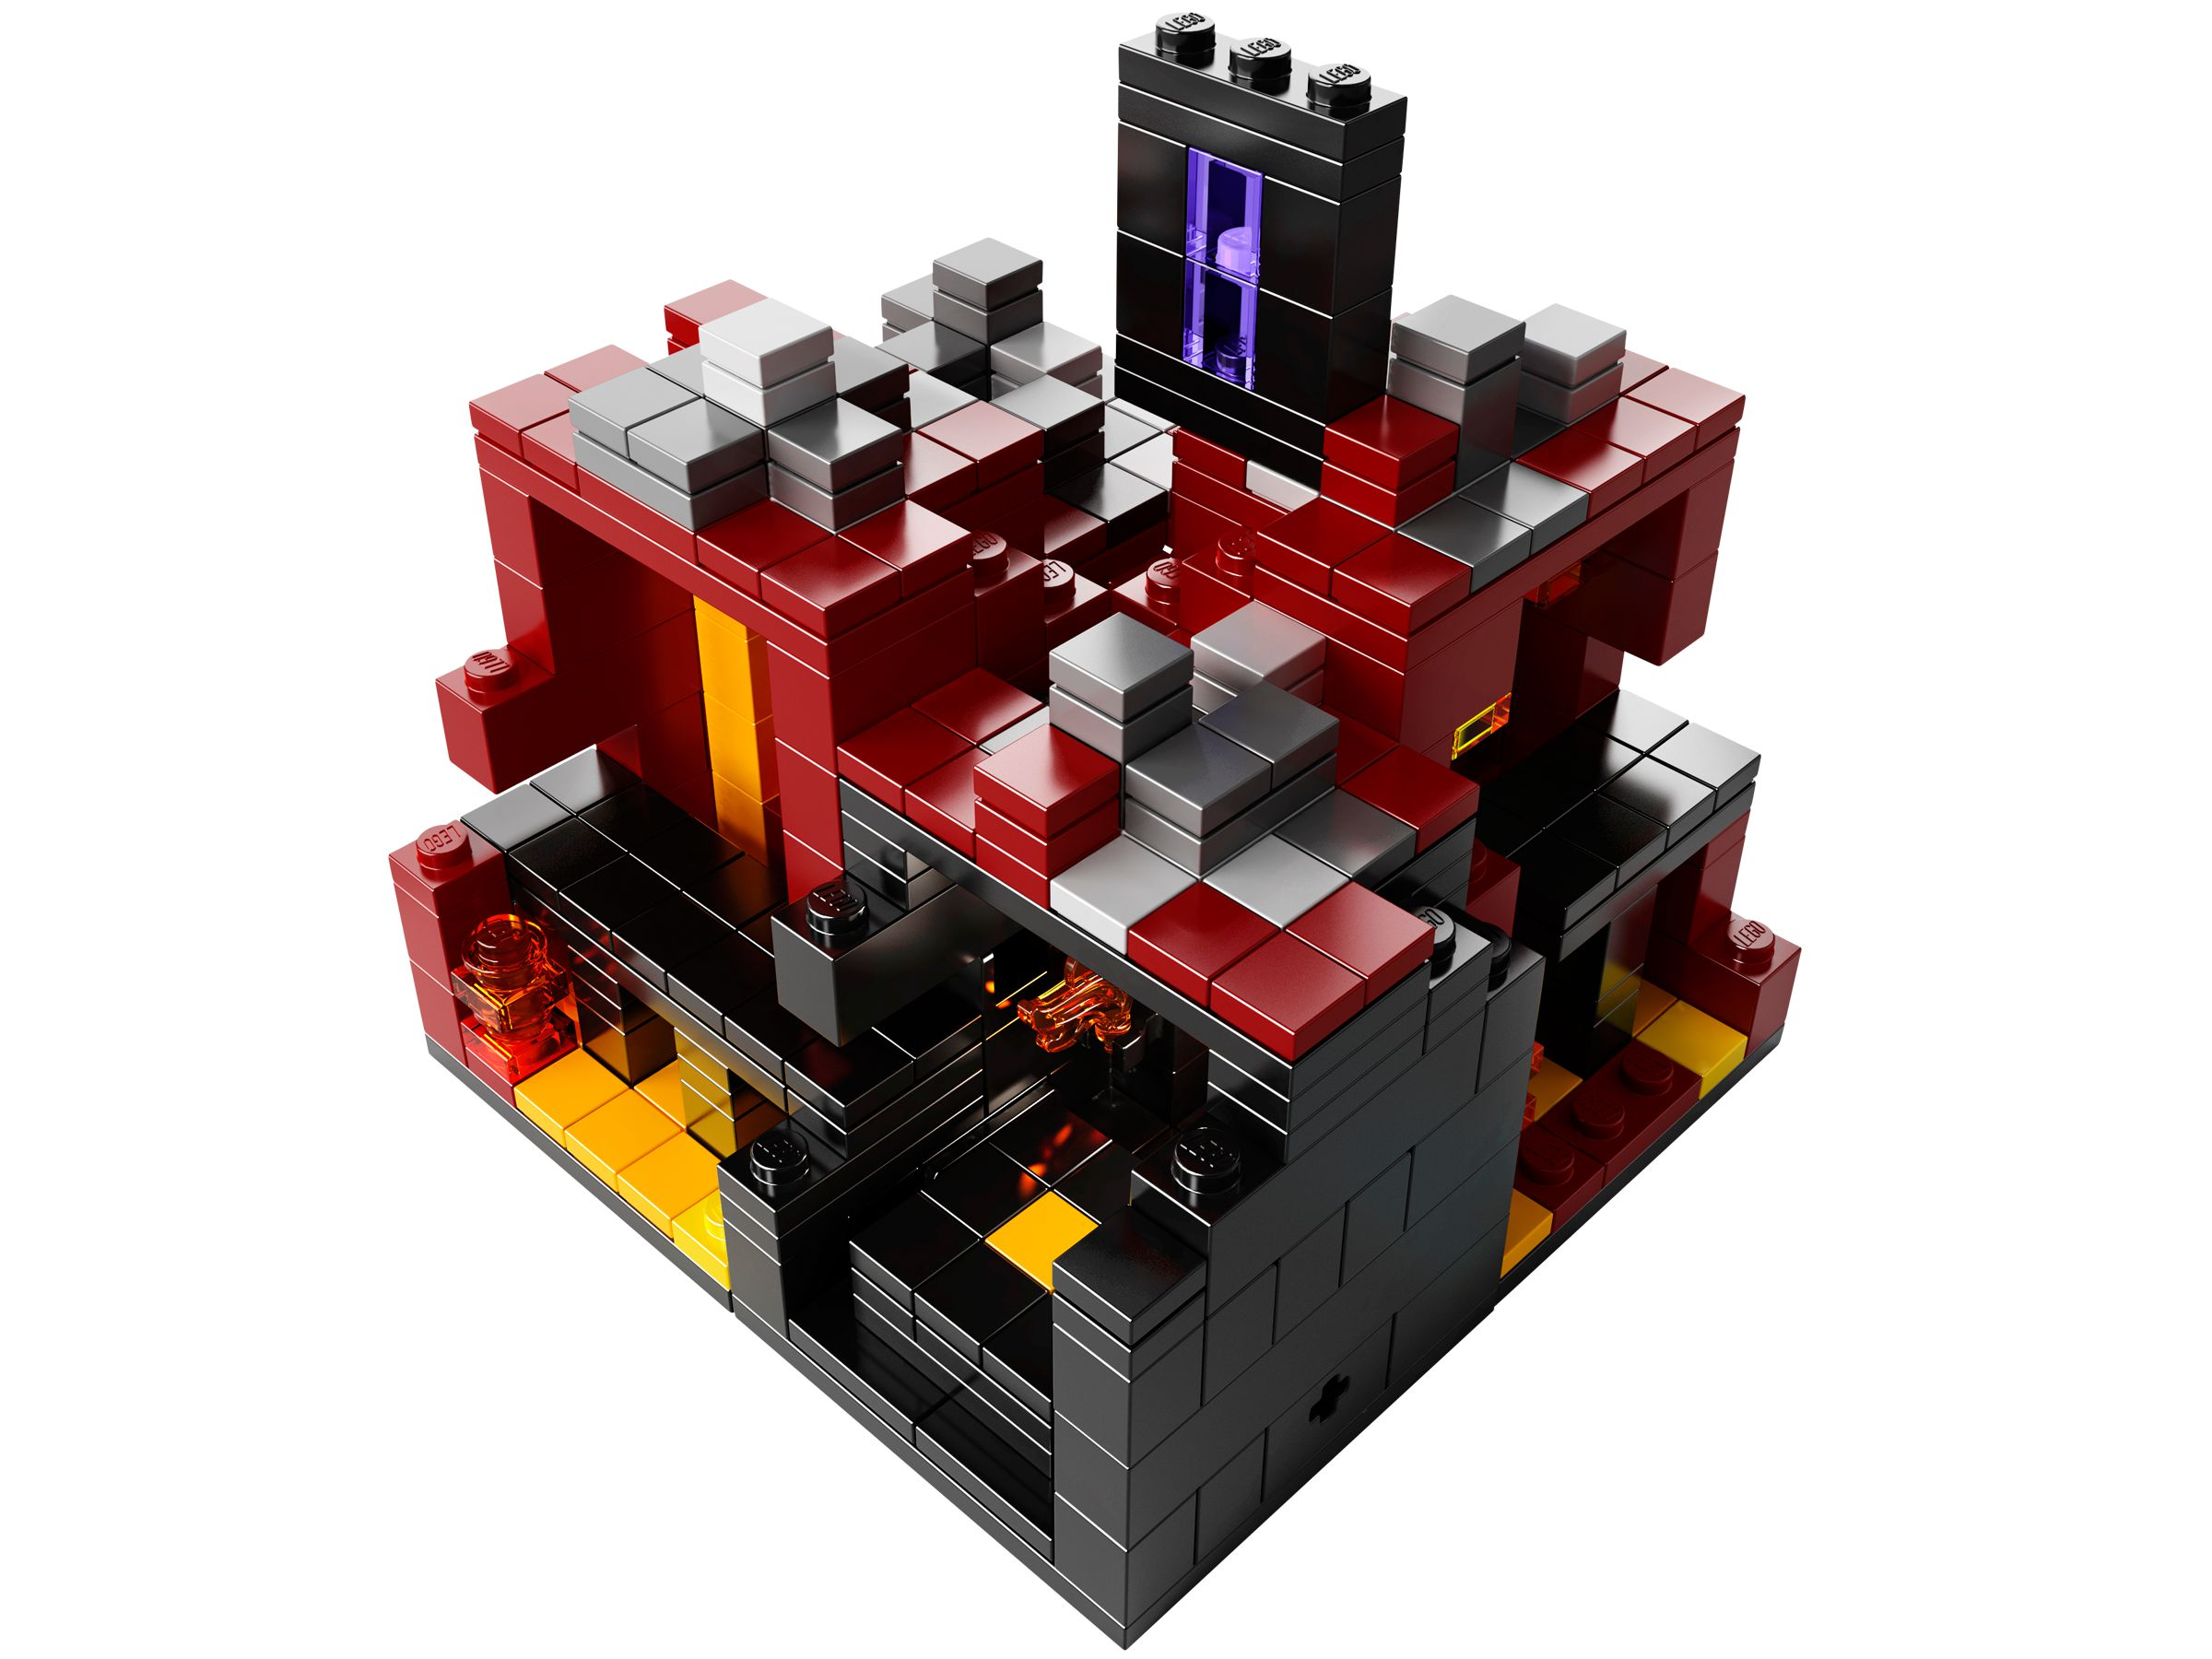 LEGO Minecraft 21106 Micro World – The Nether LEGO_21106.jpg